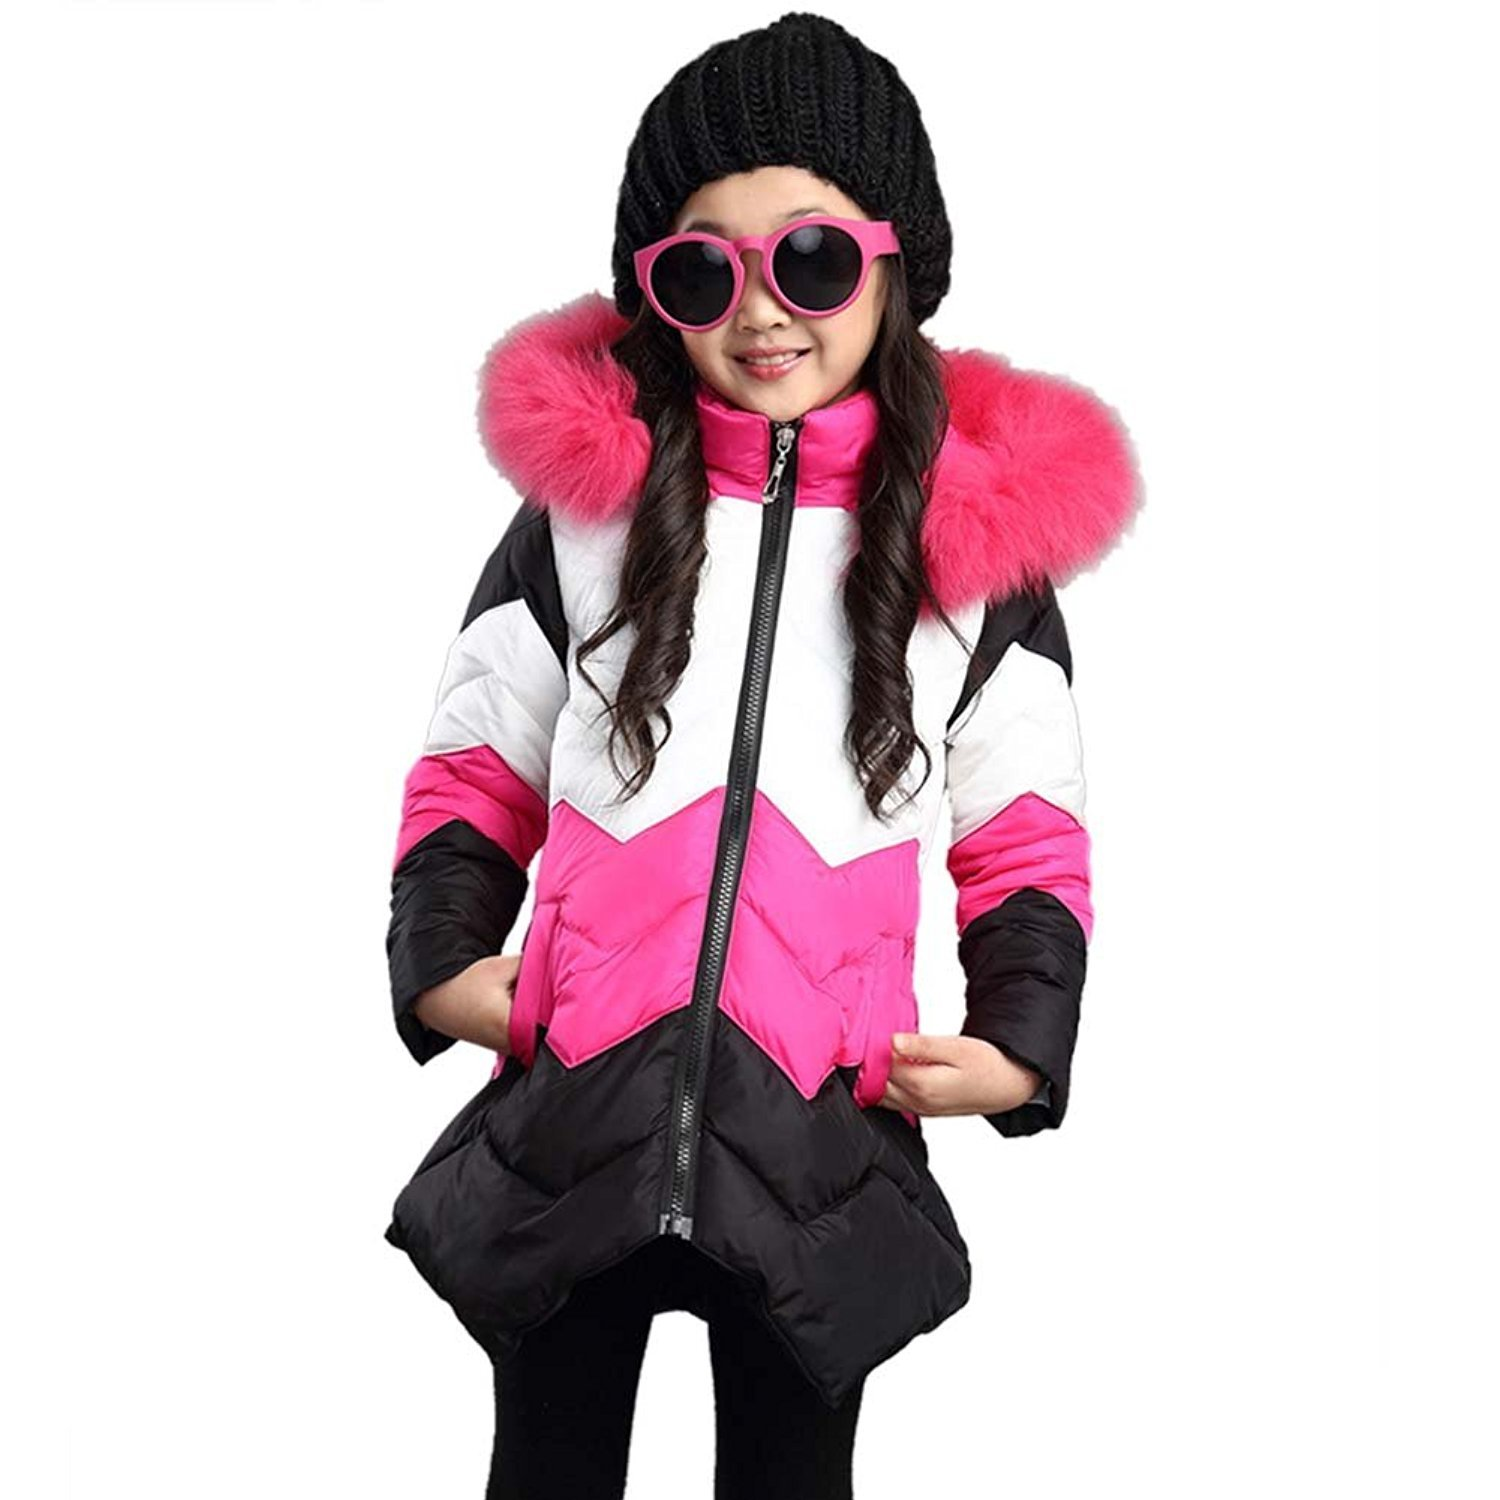 QZBAOSHU Girls Warm Cotton Coats Winter Hooded Jacket for 6-16 Years Old Children